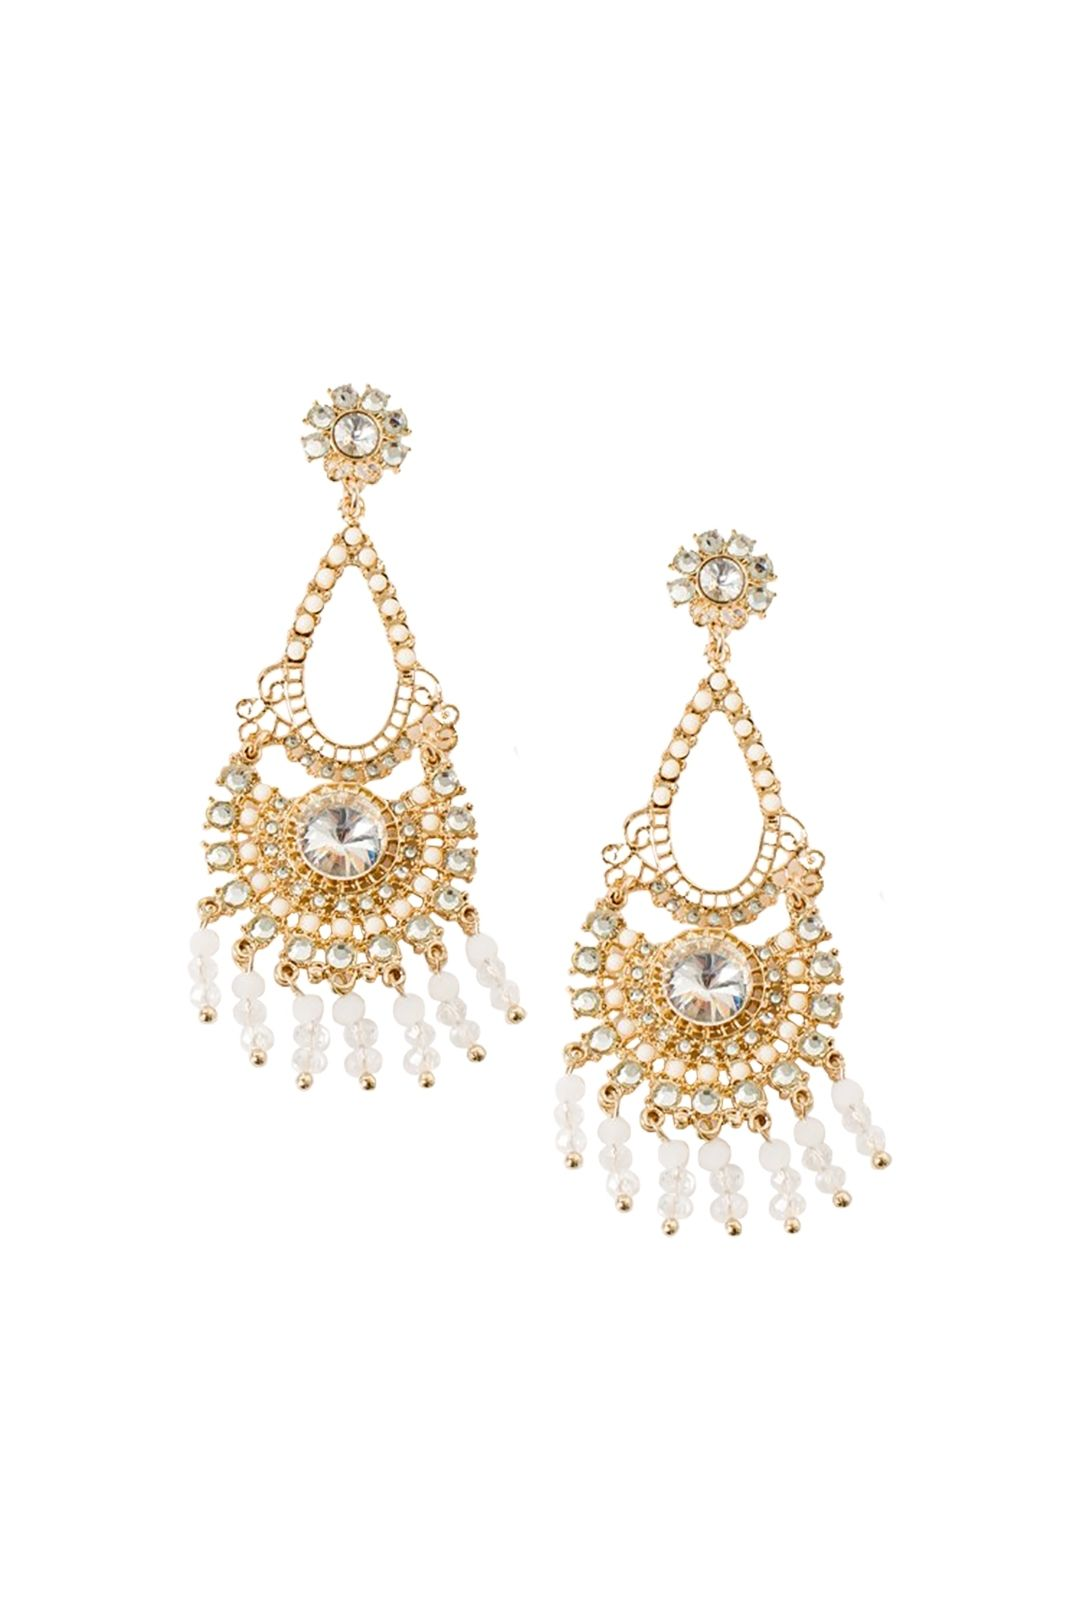 Adorne - Beaded Droplets Diamante Earring - White Gold - Front